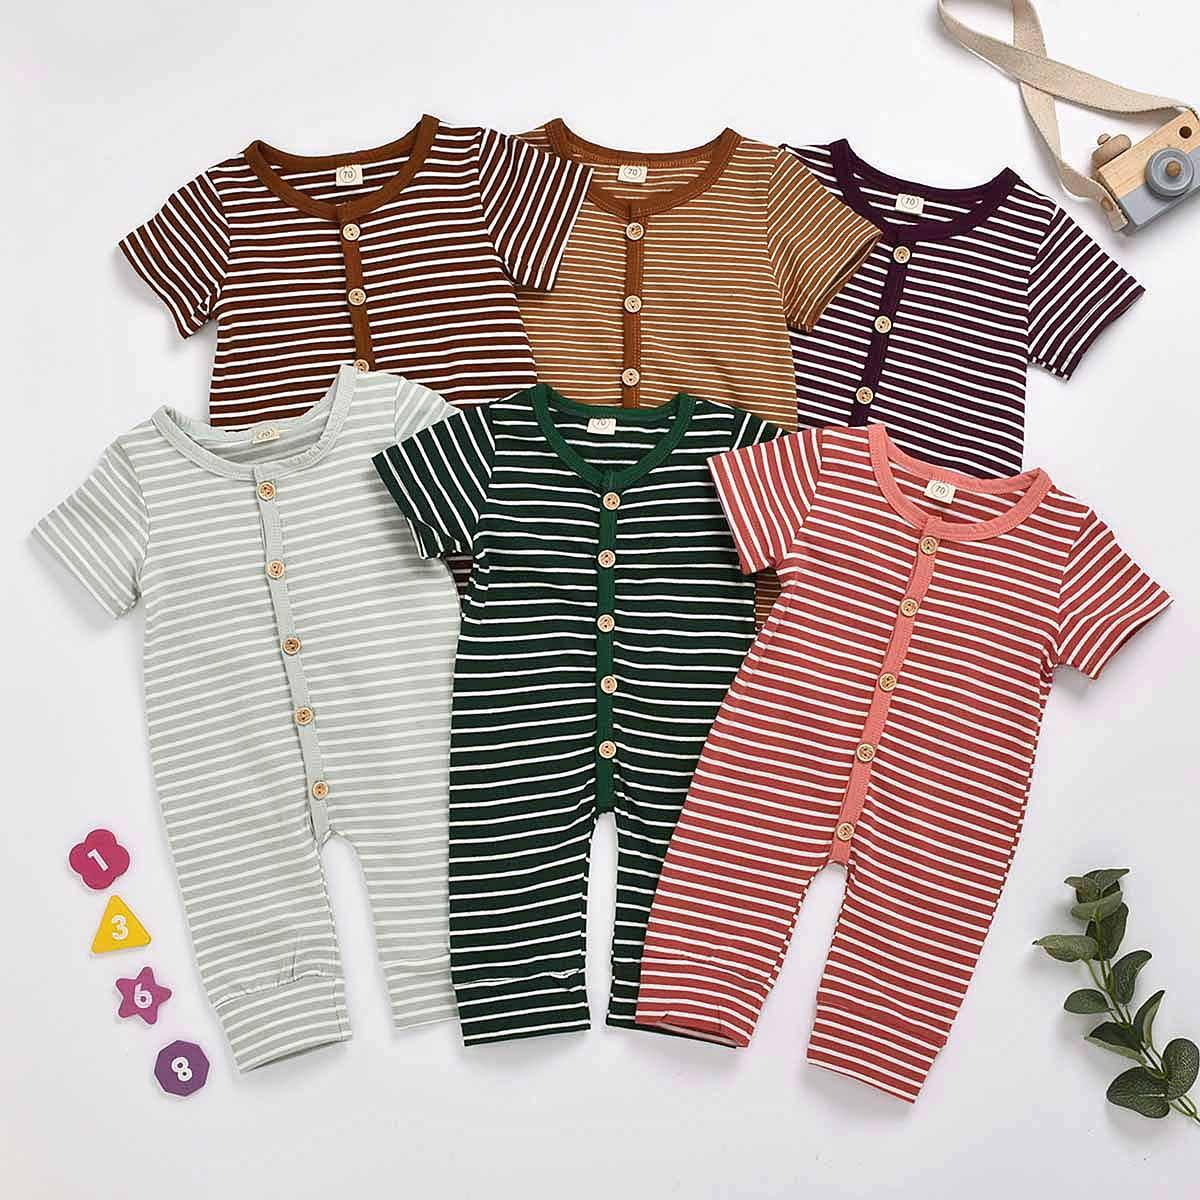 Newborn Kid Baby Boy Girl Clothes Summer Short Sleeve Causal Romper Stripe Cute Cotton Jumpsuit lovely Sunsuit Outfit